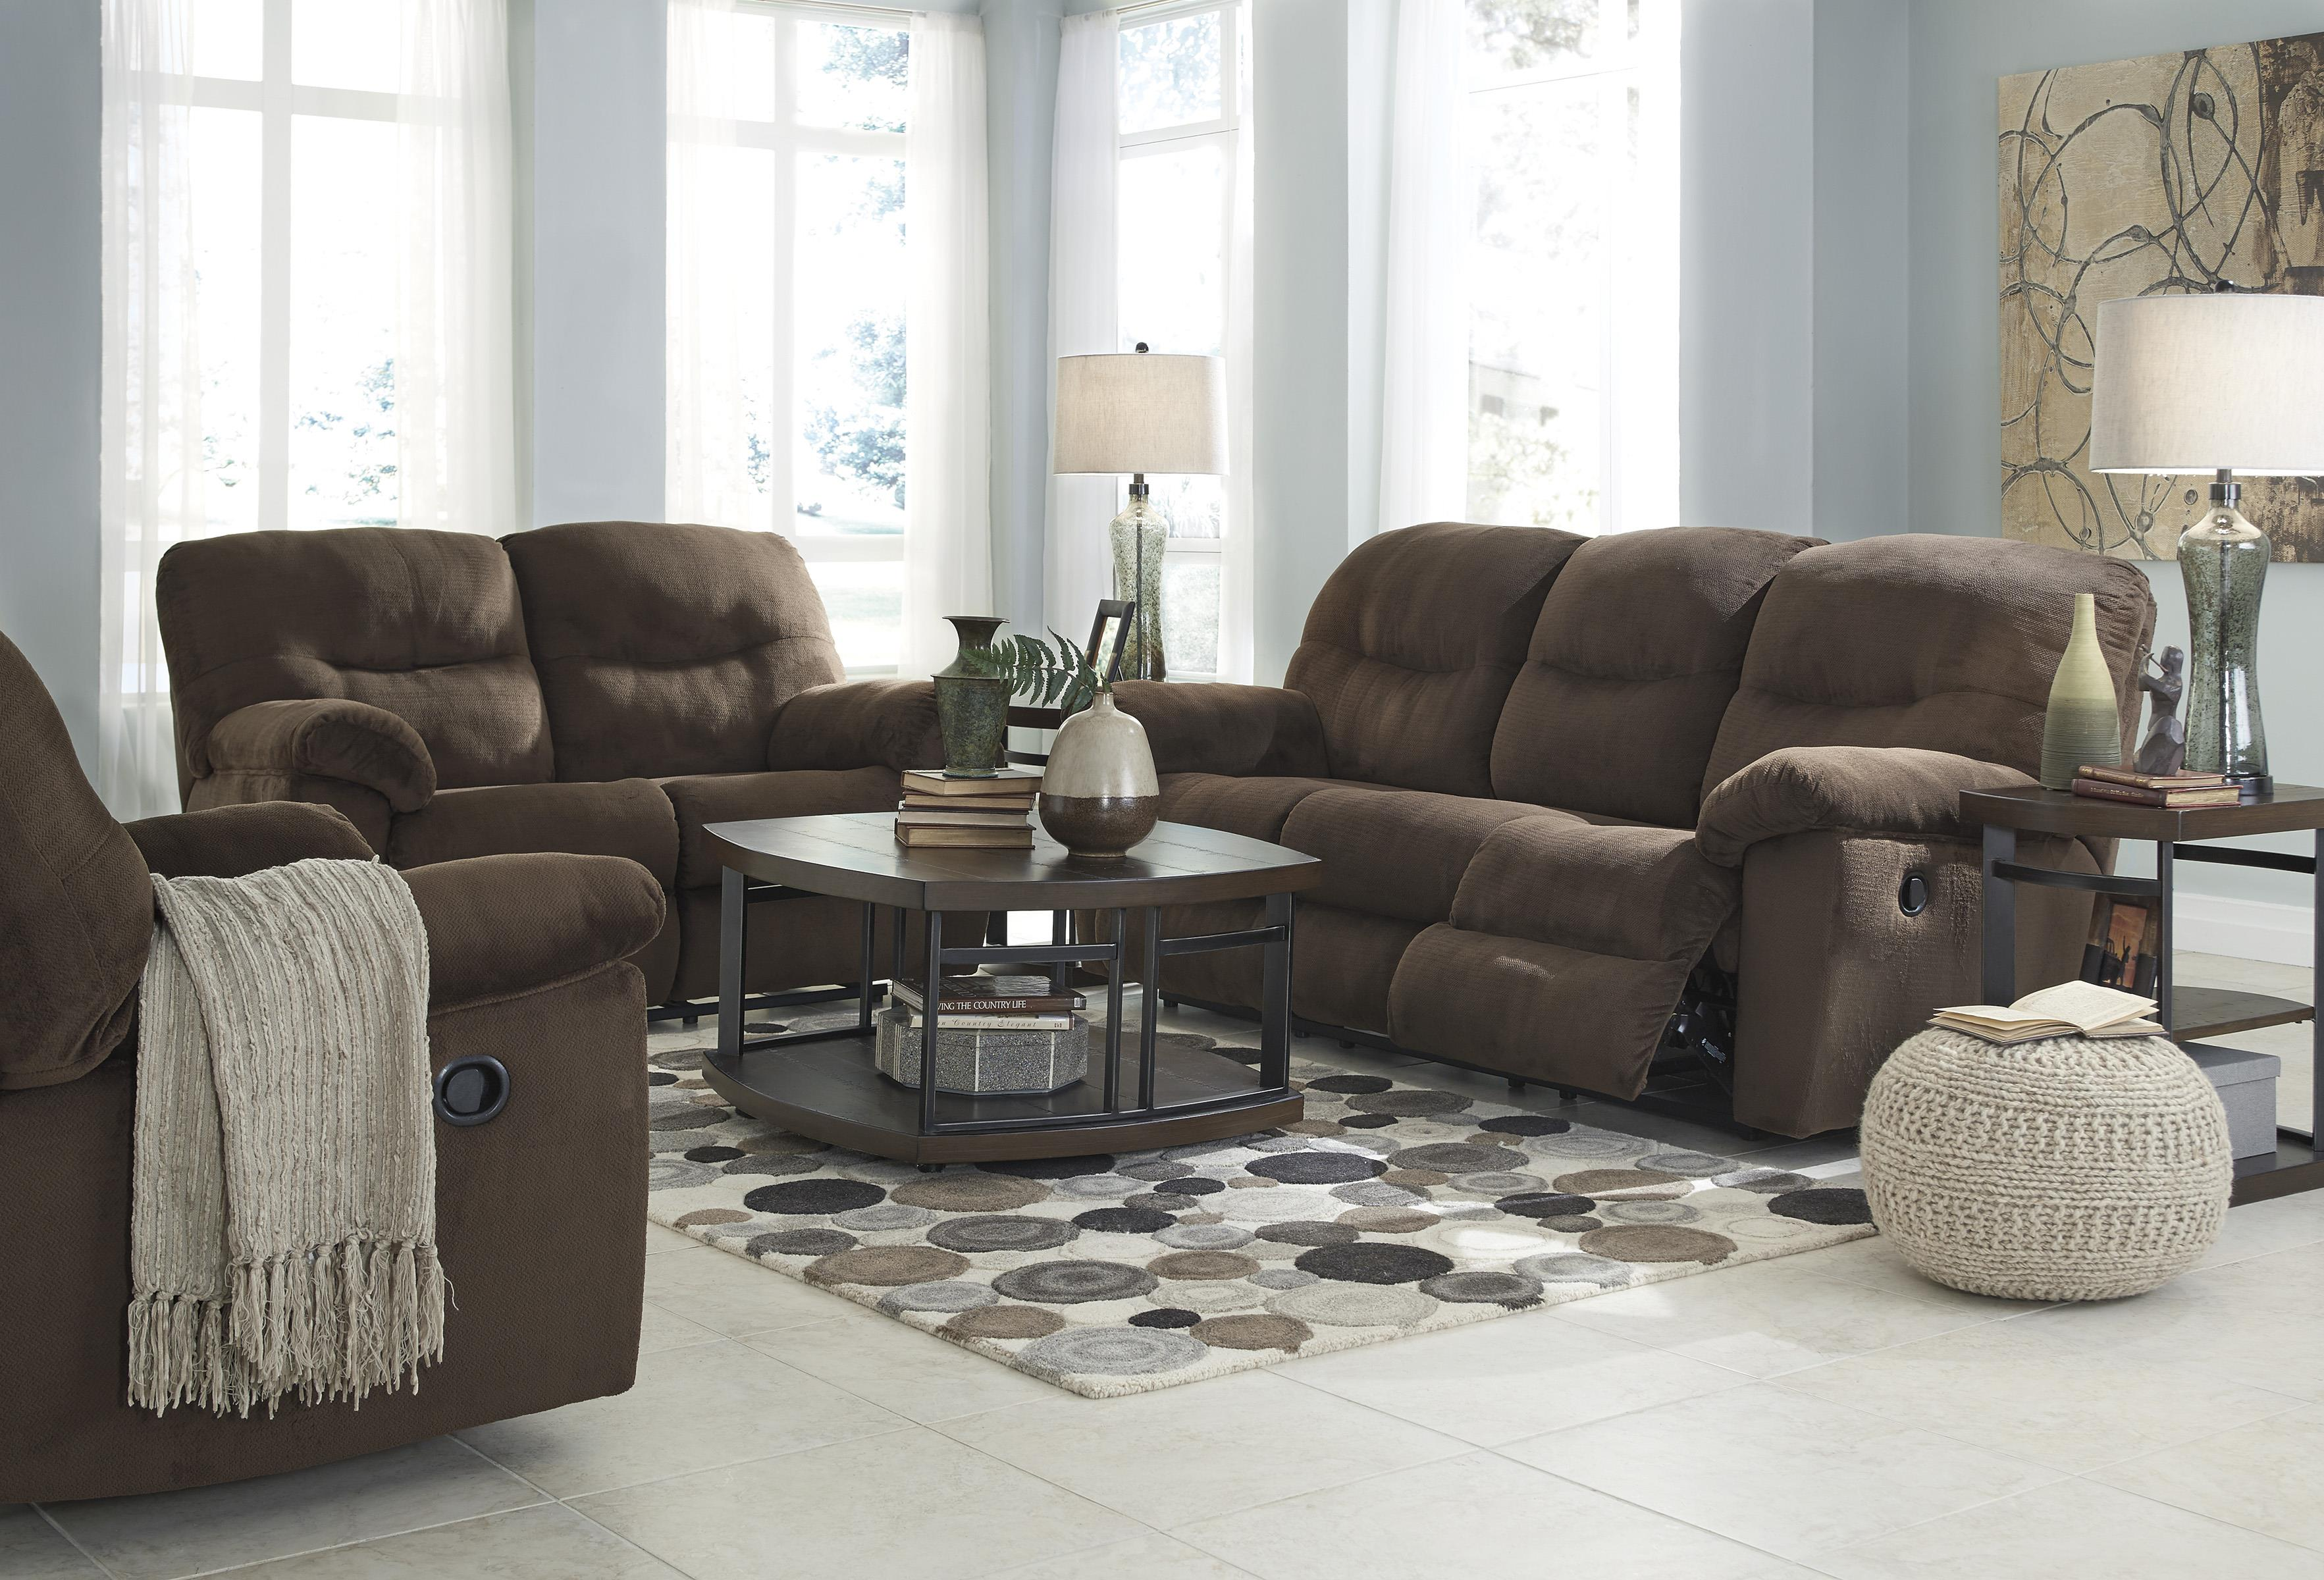 Signature Design by Ashley Slidell Reclining Living Room Group - Item Number: 82702 Living Room Group 2